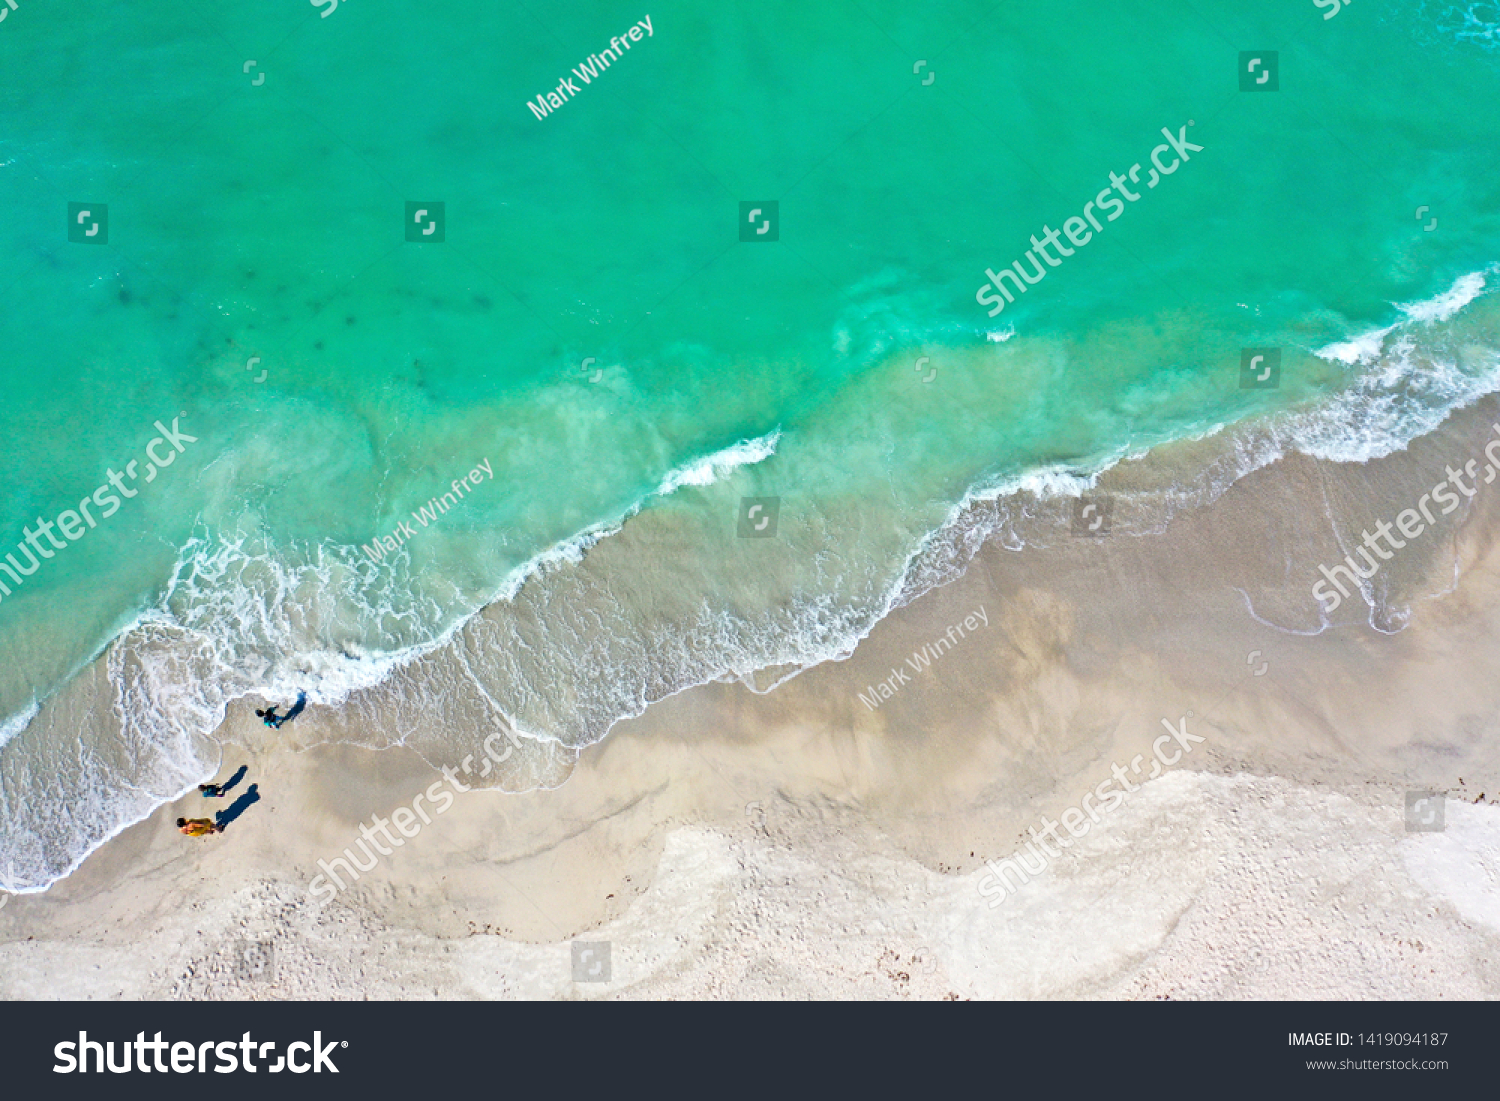 stock-photo-aerial-photo-of-people-stand